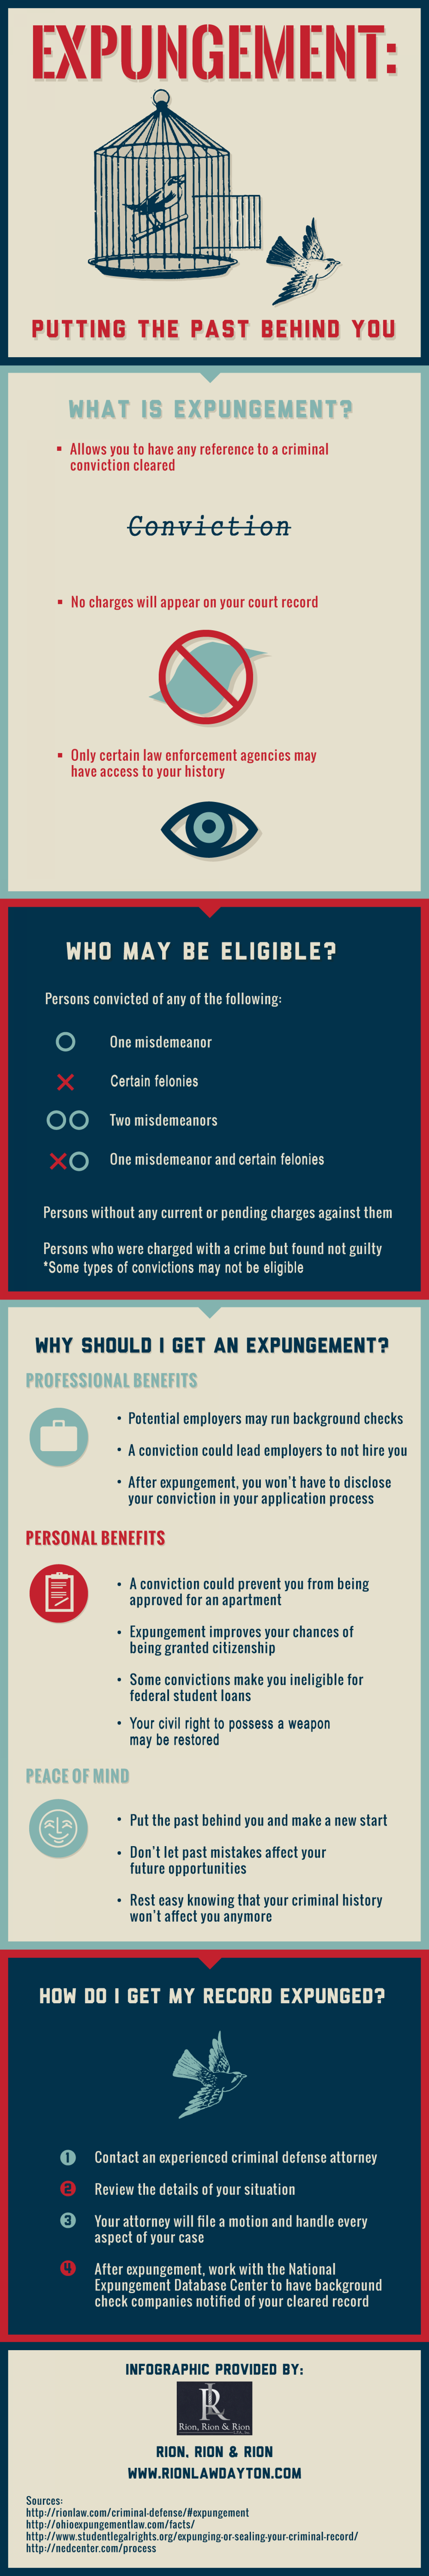 Expungement: Putting the Past Behind You Infographic